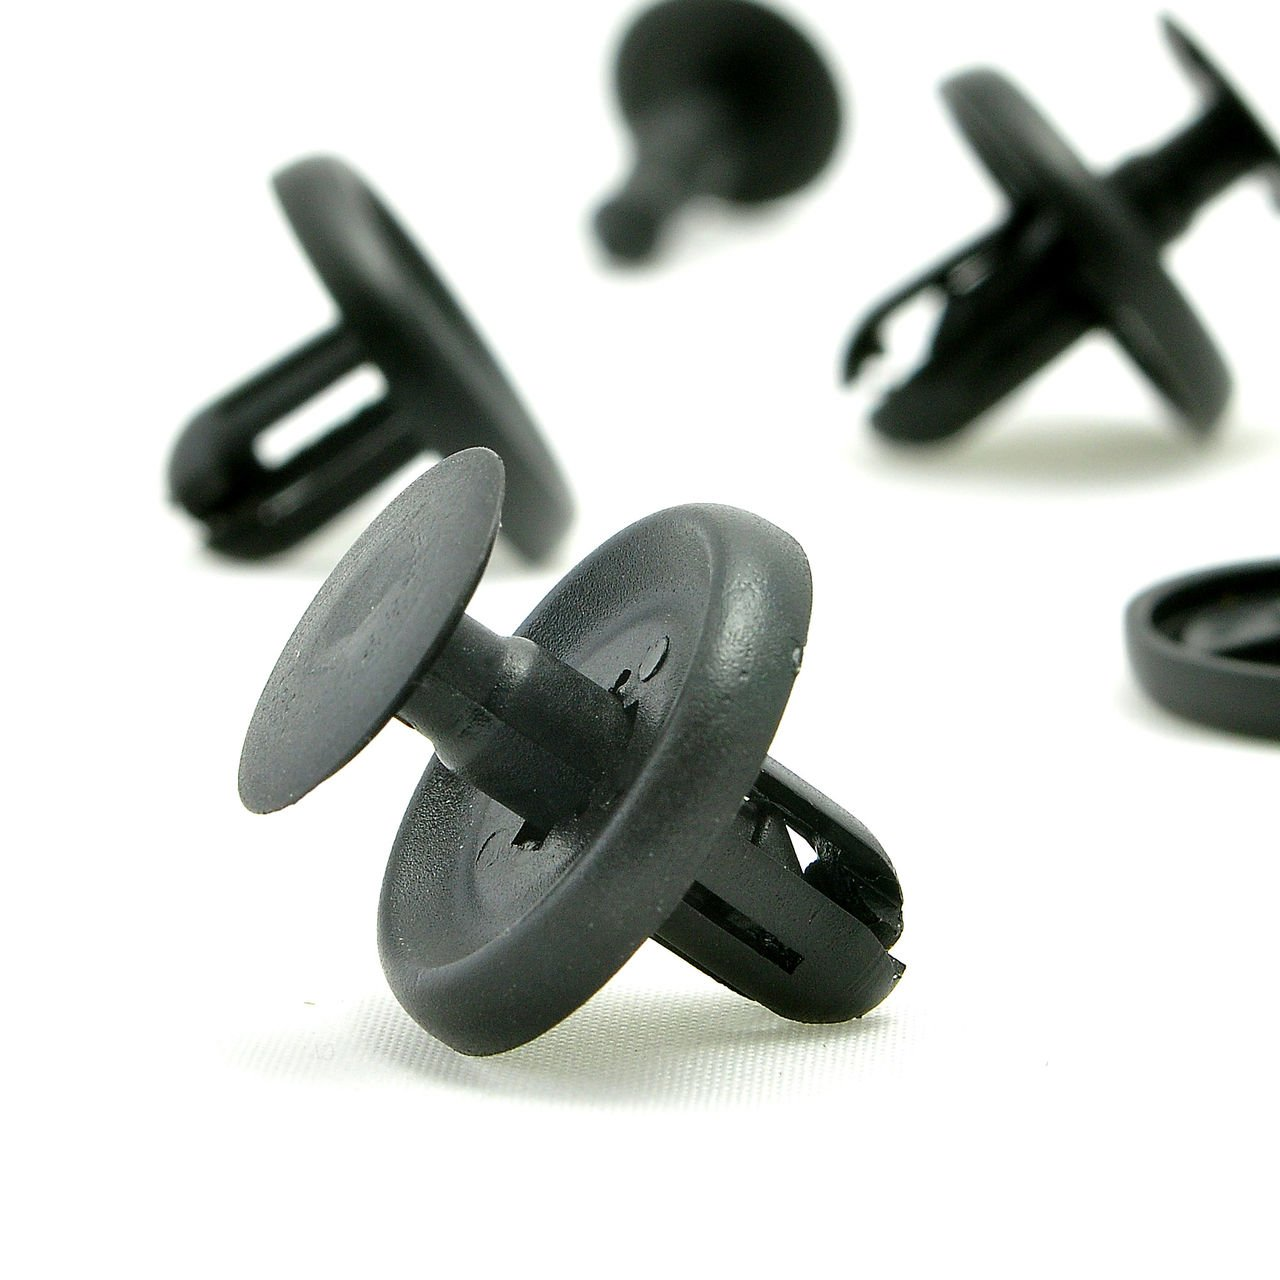 Approved for Automotive Approved 20pcs Pcs Lexus Toyota Clips-90467-07201 & Stronger Than Original OEM, 20 Pack